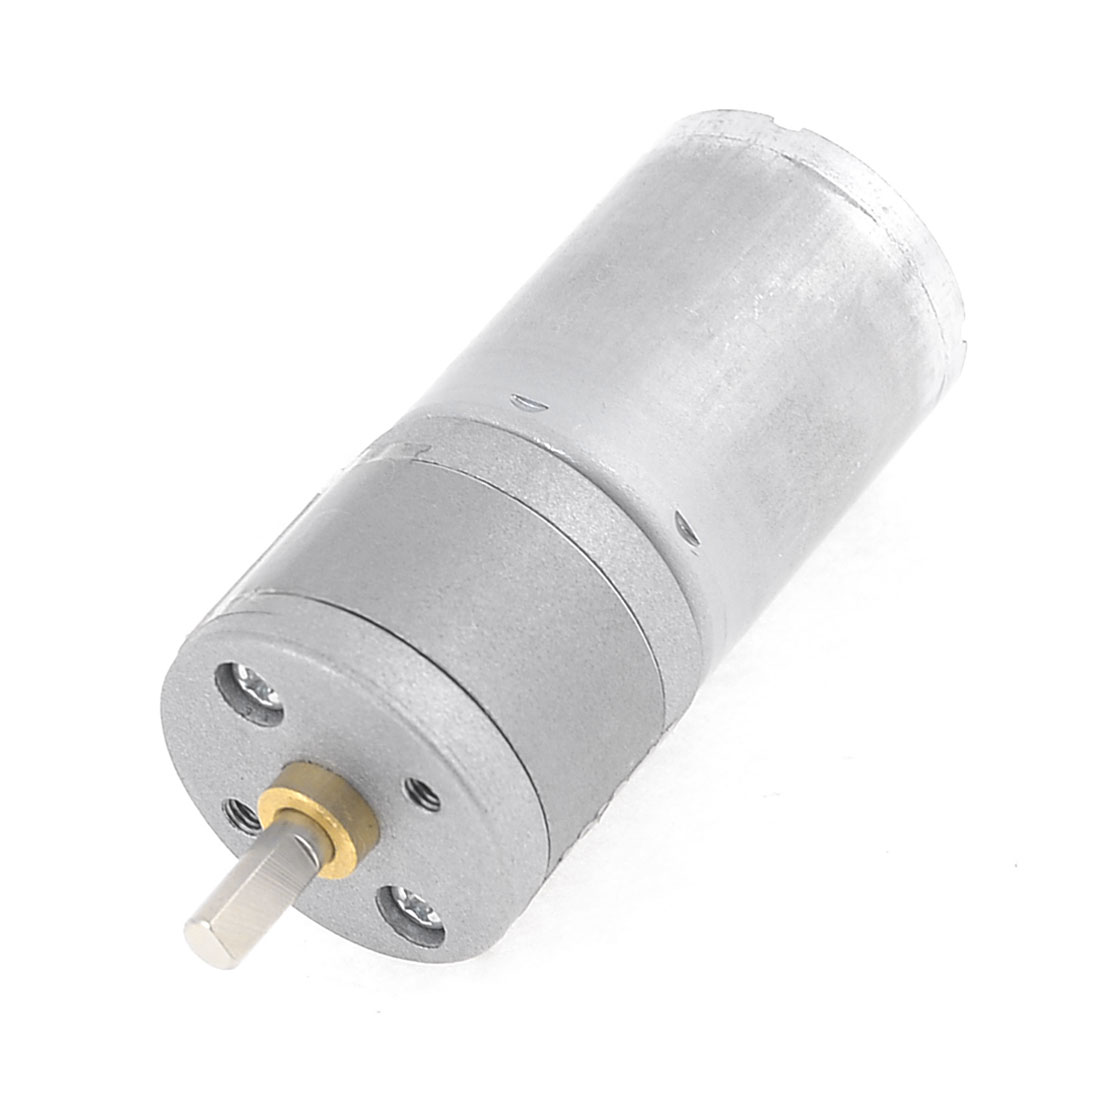 25mm Diameter Gearbox 25GA 100RPM 65mA 12V DC Geared Motor